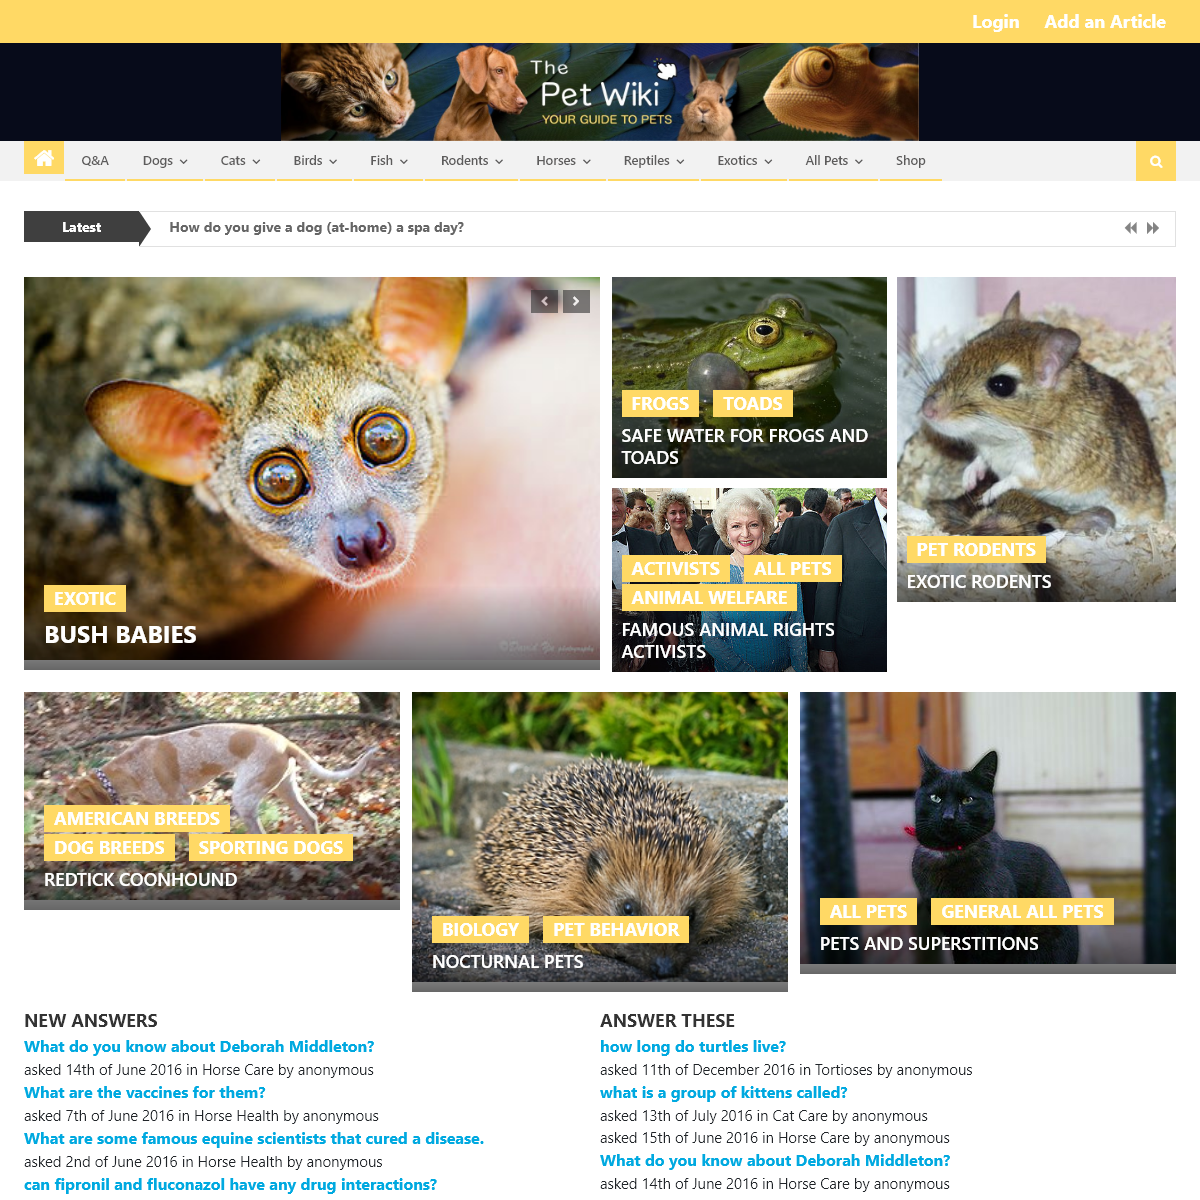 Home Page - The Pet Wiki